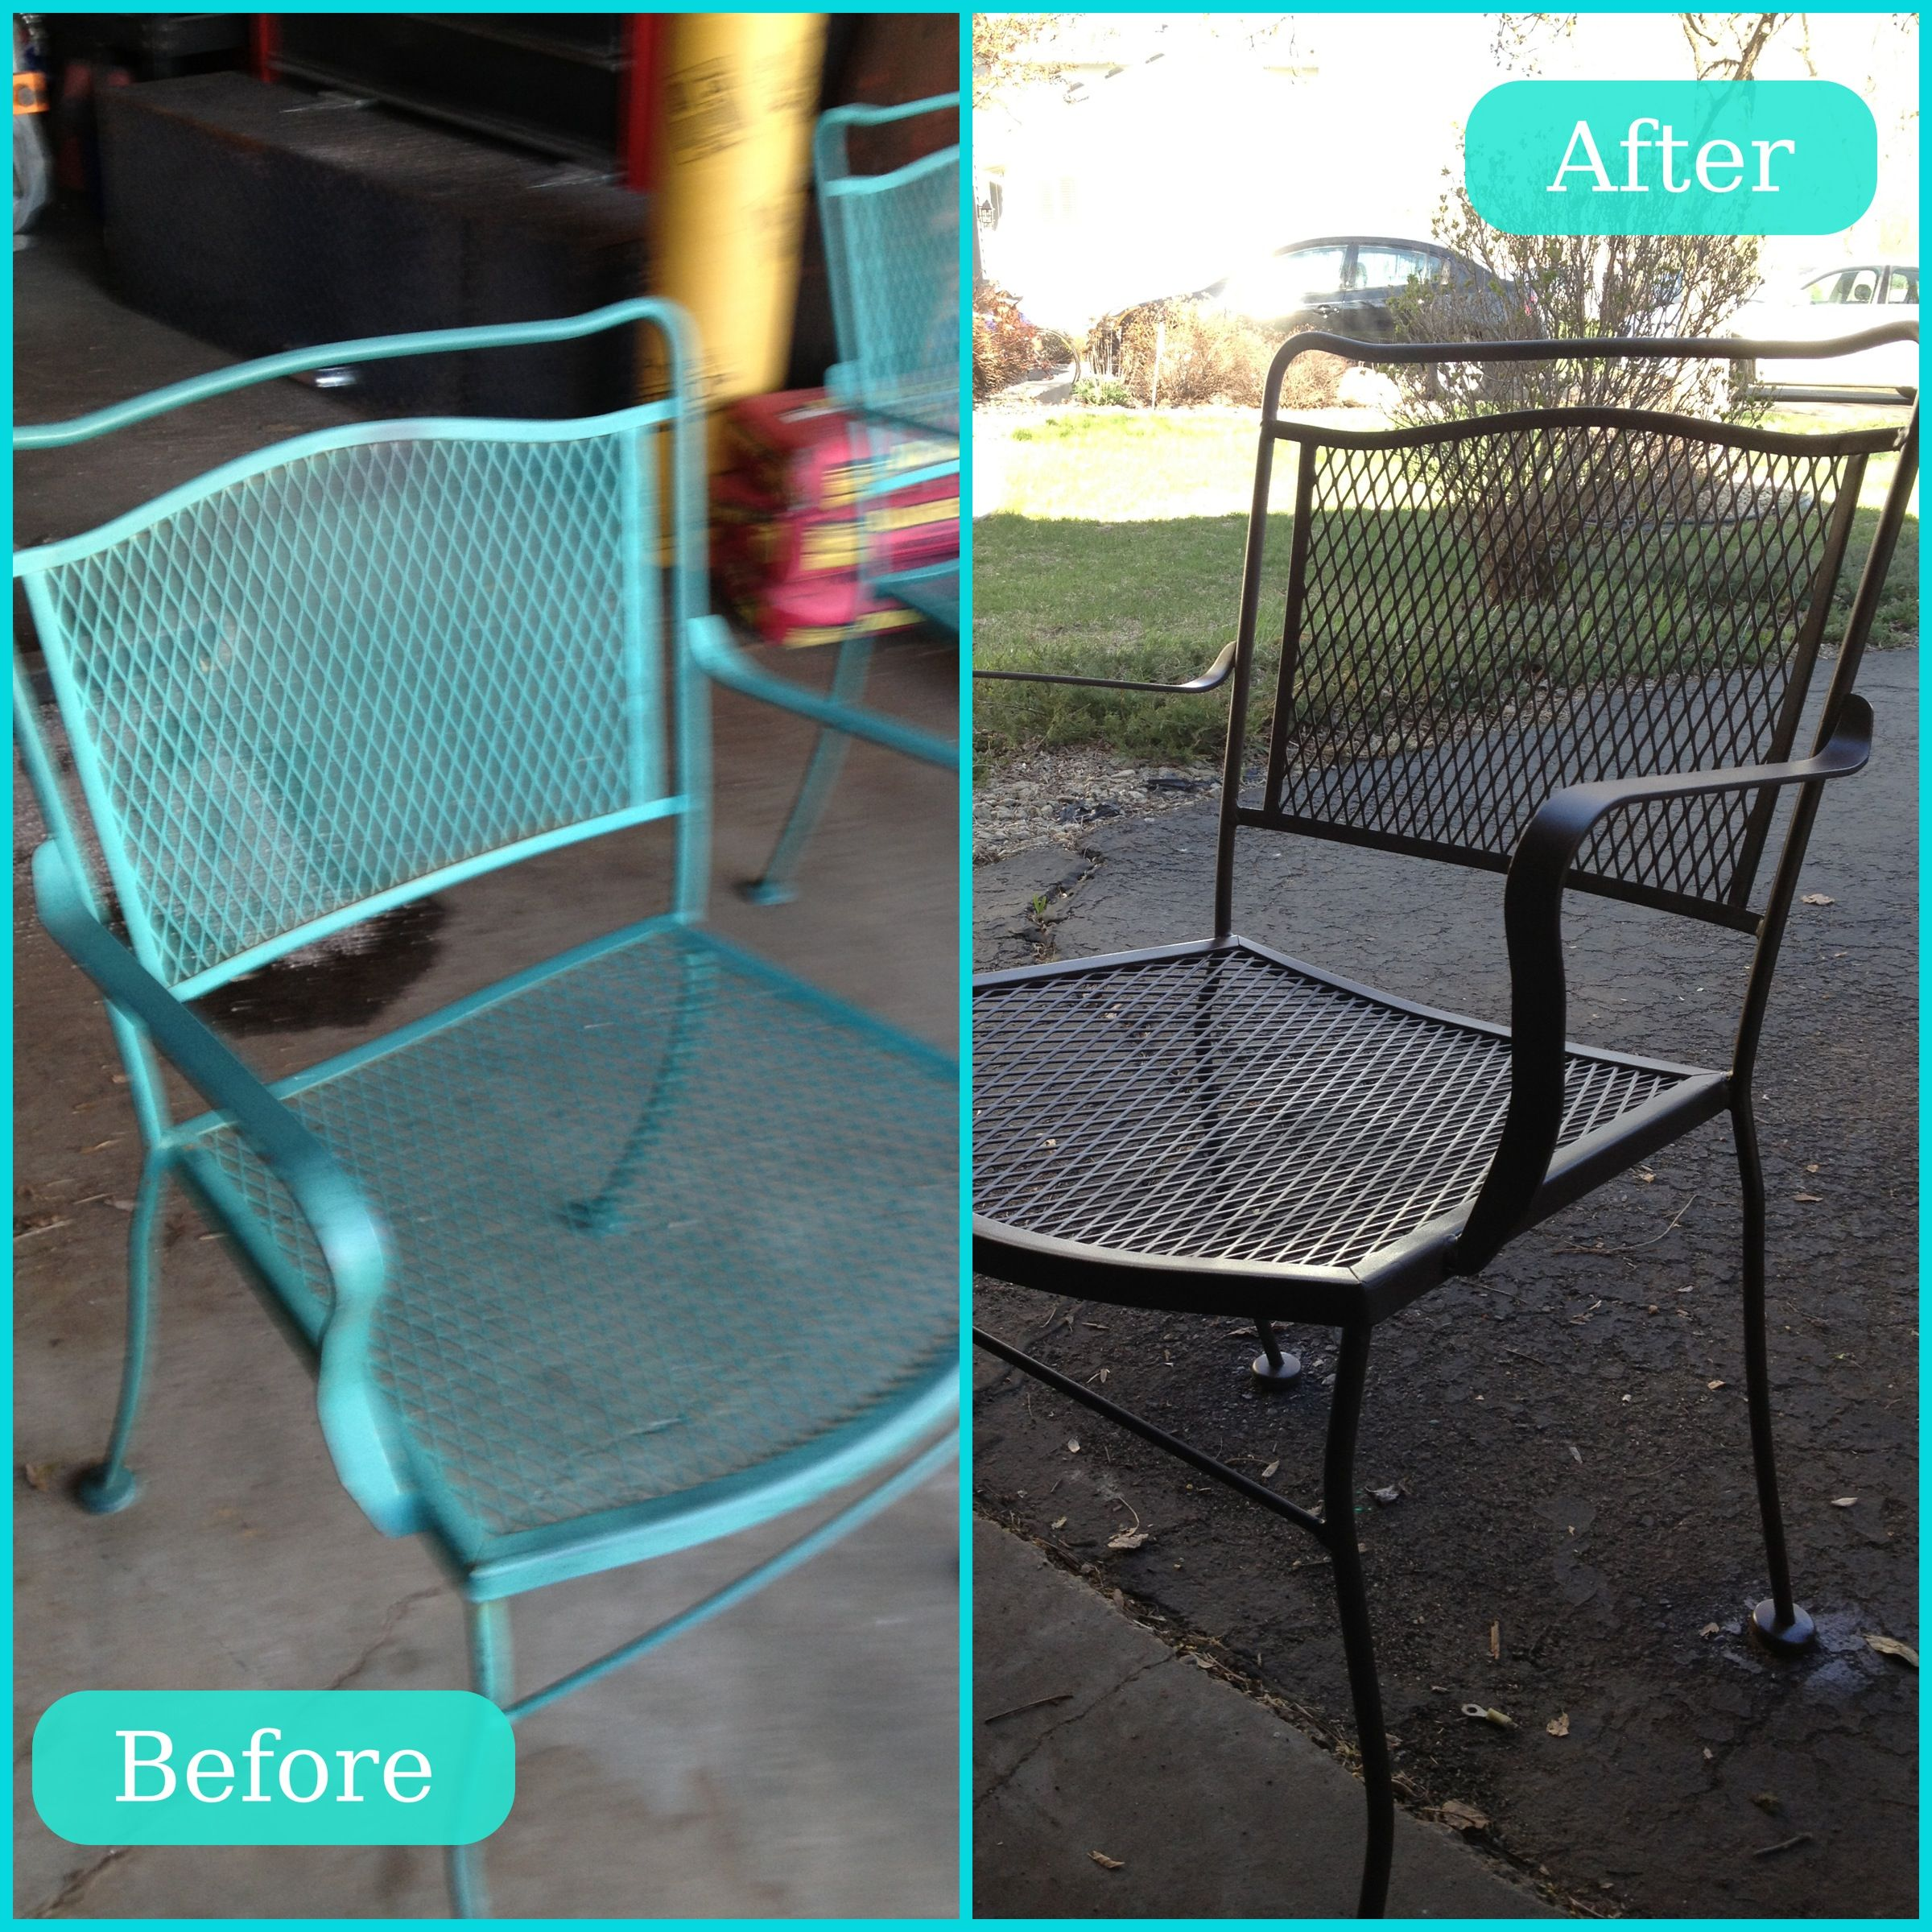 Attrayant Scarp Off Rust, Lightly Sand And Spray Paint! Patio Furniture Redo  Just  Need